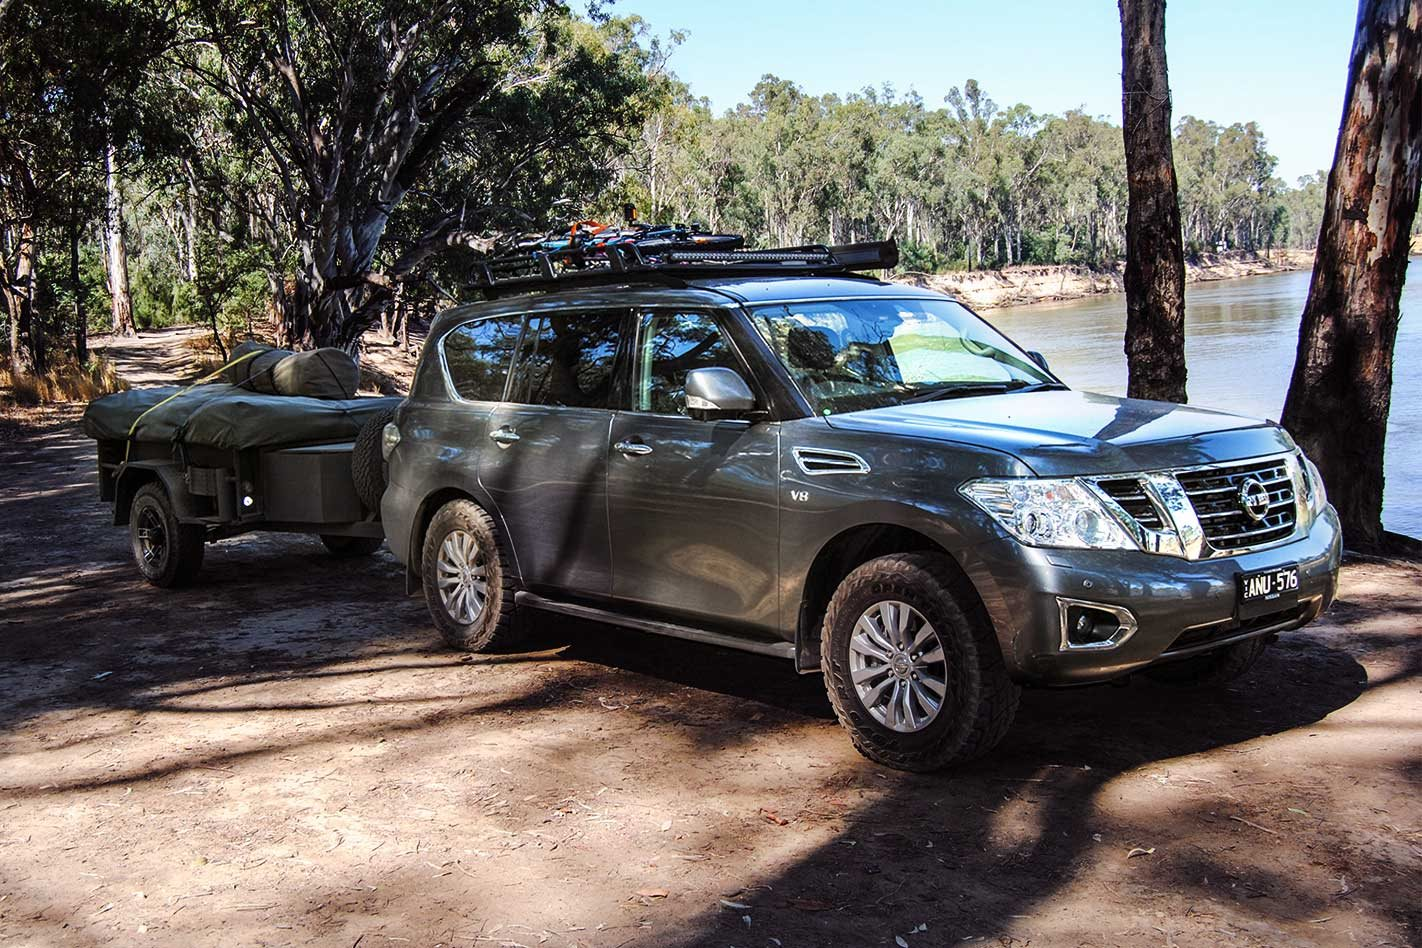 2017 Nissan Patrol Ti-L to the Murray River: 4x4 Shed